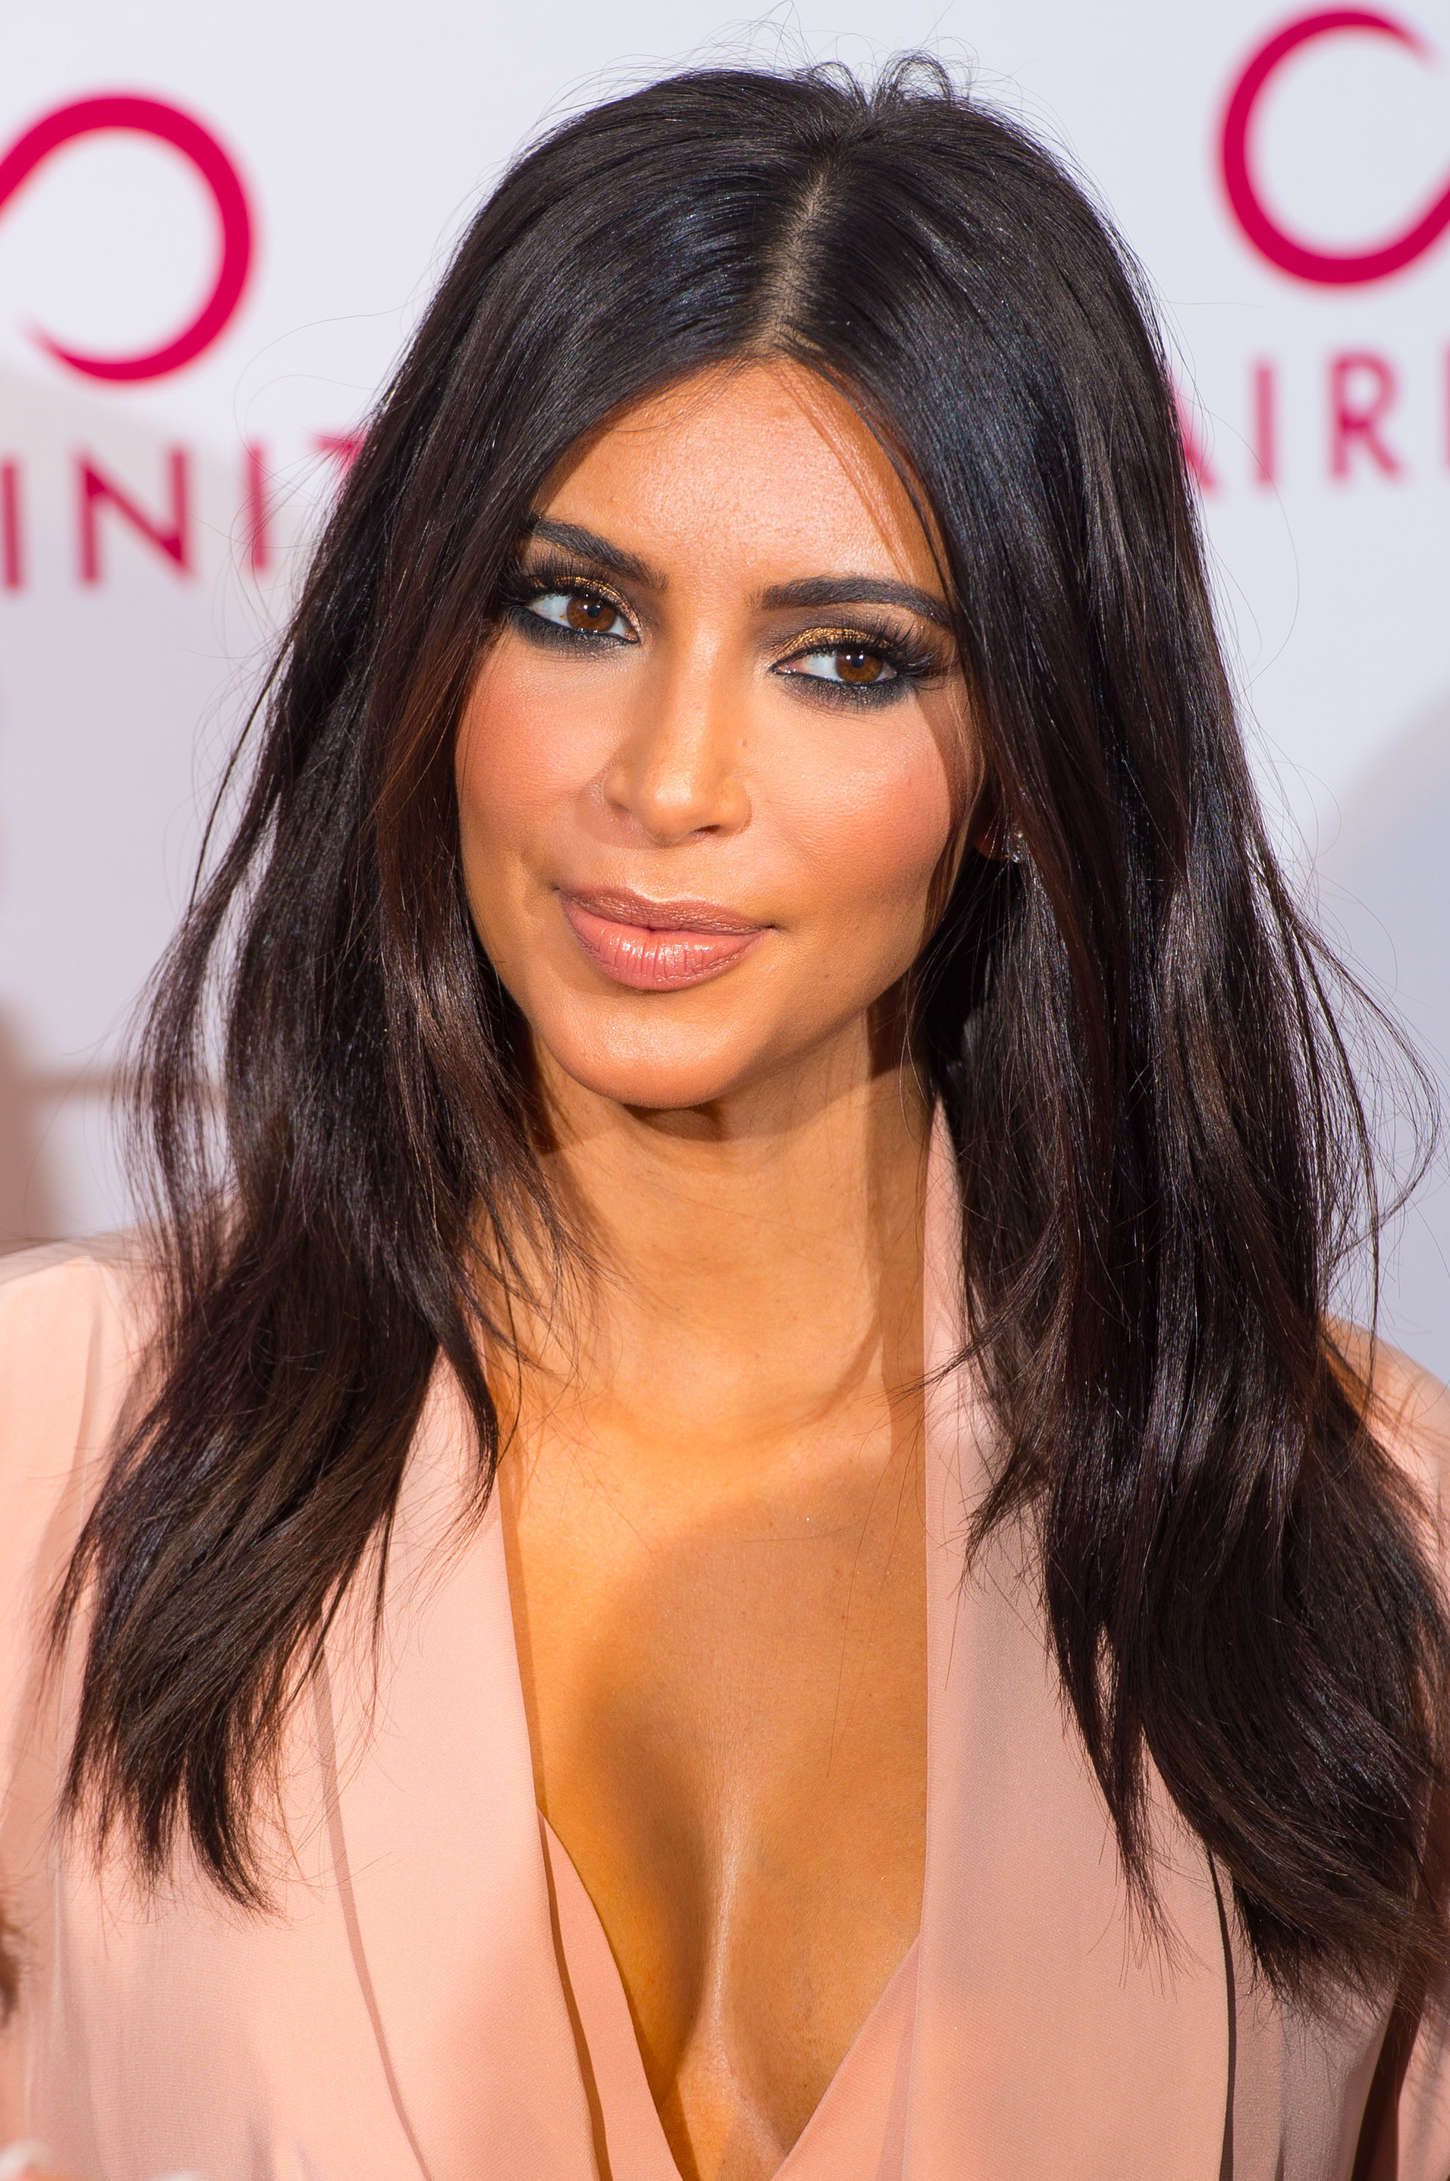 Communication on this topic: Feryna Wazheir, 23-kim-kardashian/